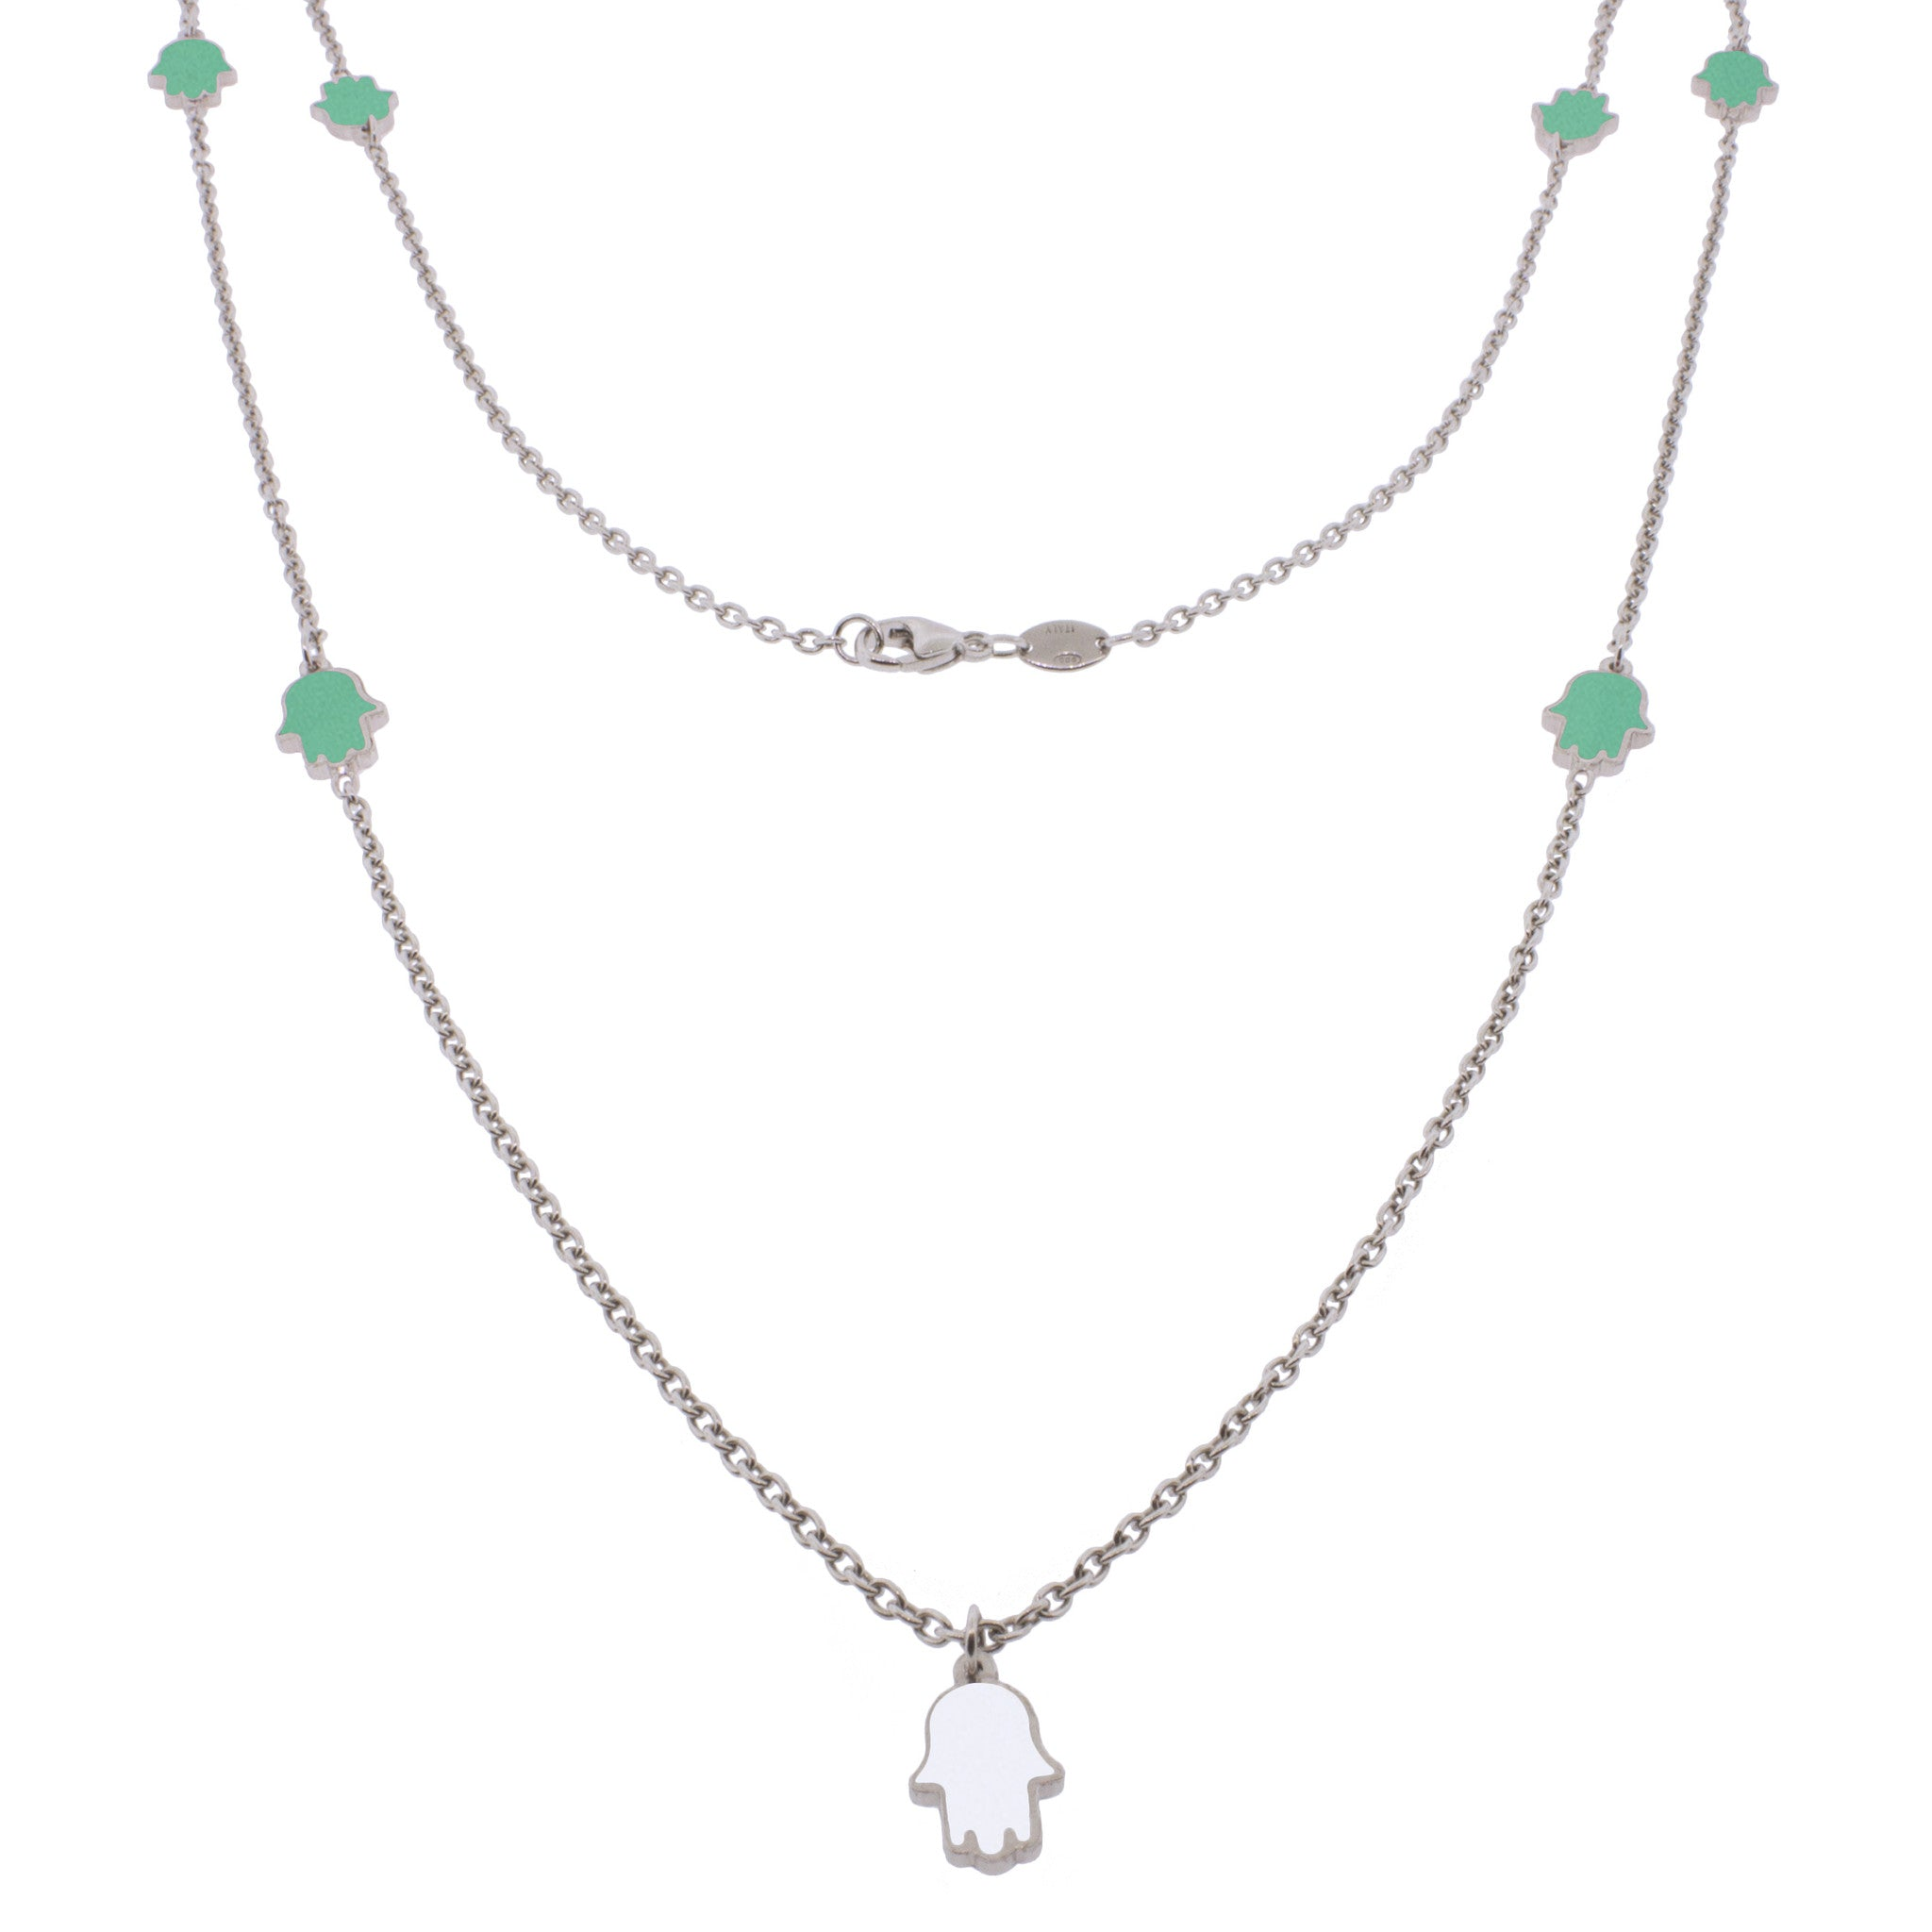 36-inch Touch of Luck Sterling Silver Necklace - Turquoise